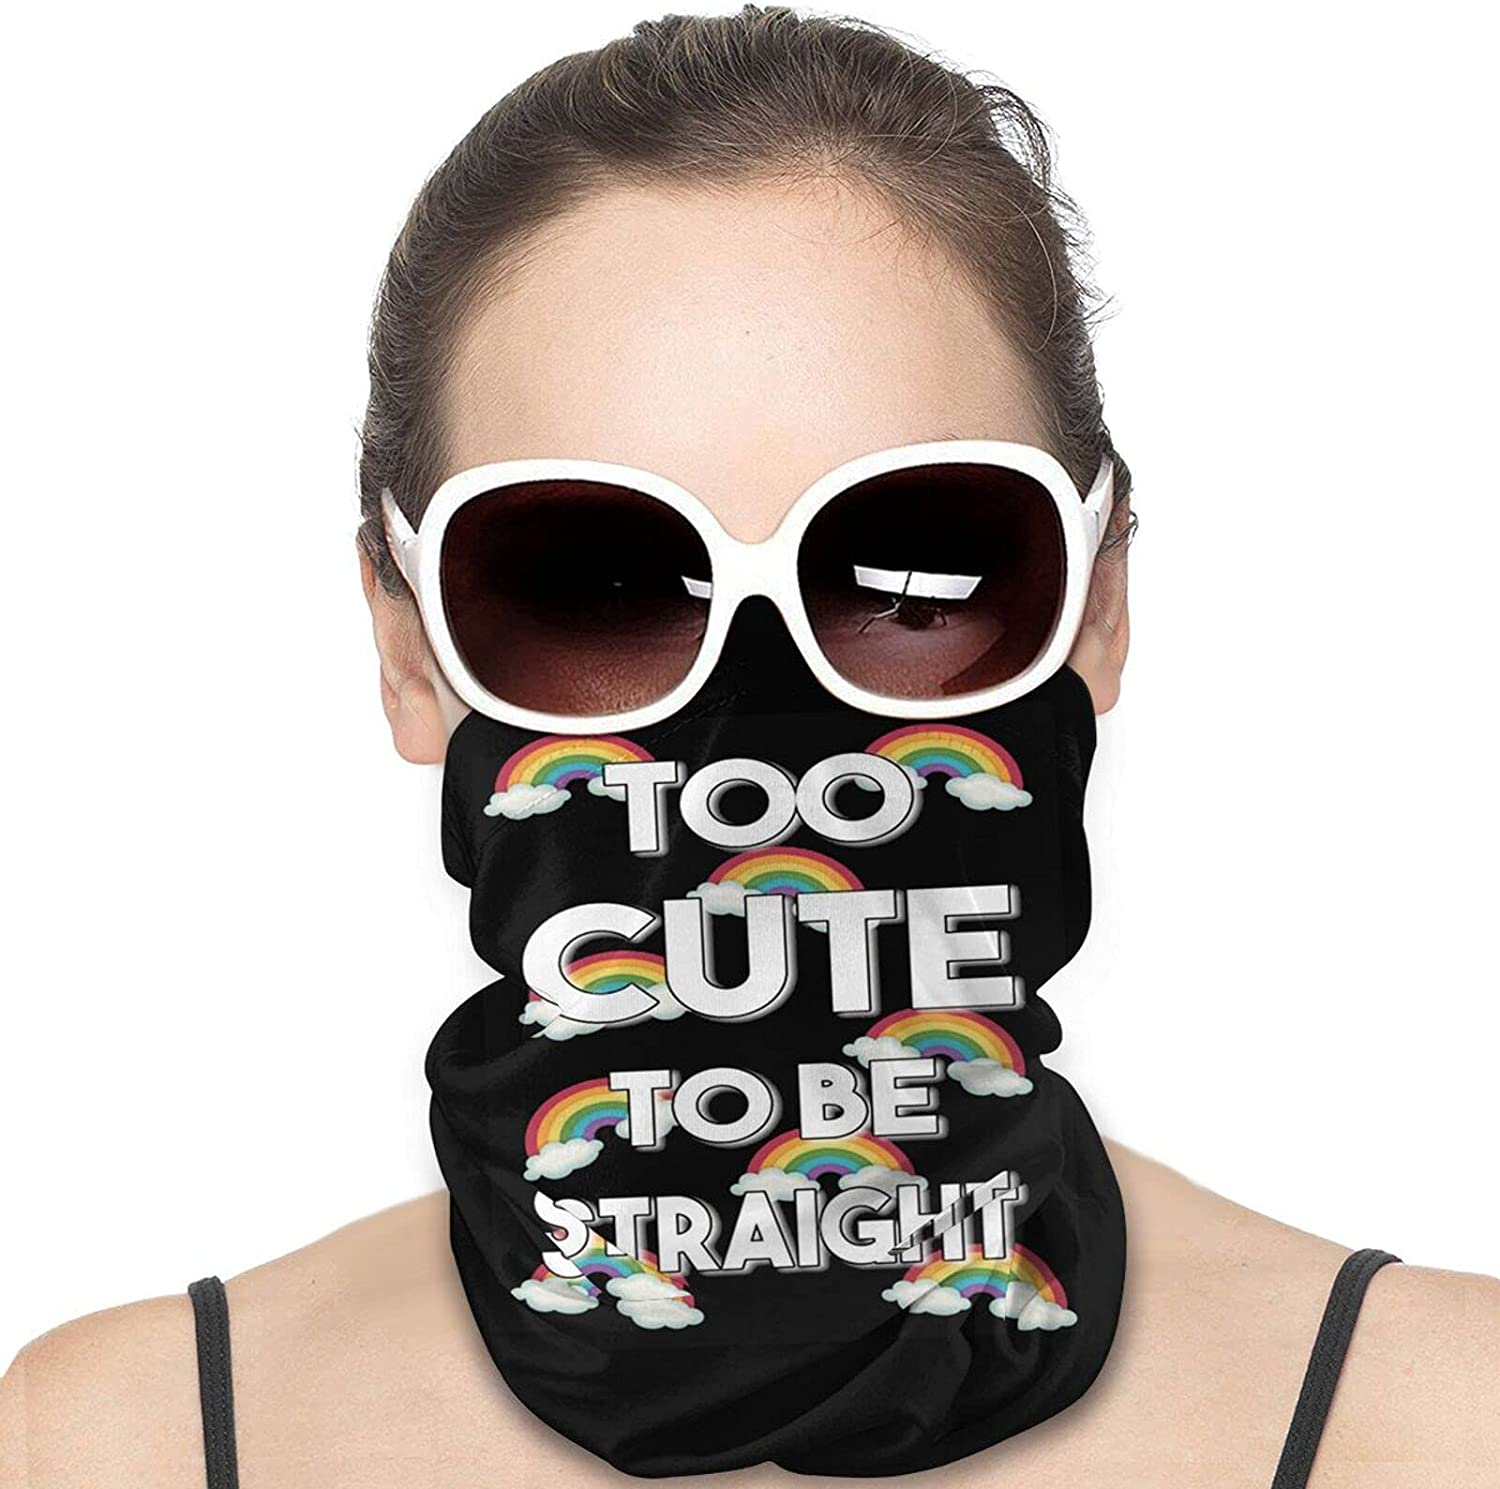 TOO CUTE TO BE STRAIGHT Round Neck Gaiter Bandnas Face Cover Uv Protection Prevent bask in Ice Scarf Headbands Perfect for Motorcycle Cycling Running Festival Raves Outdoors